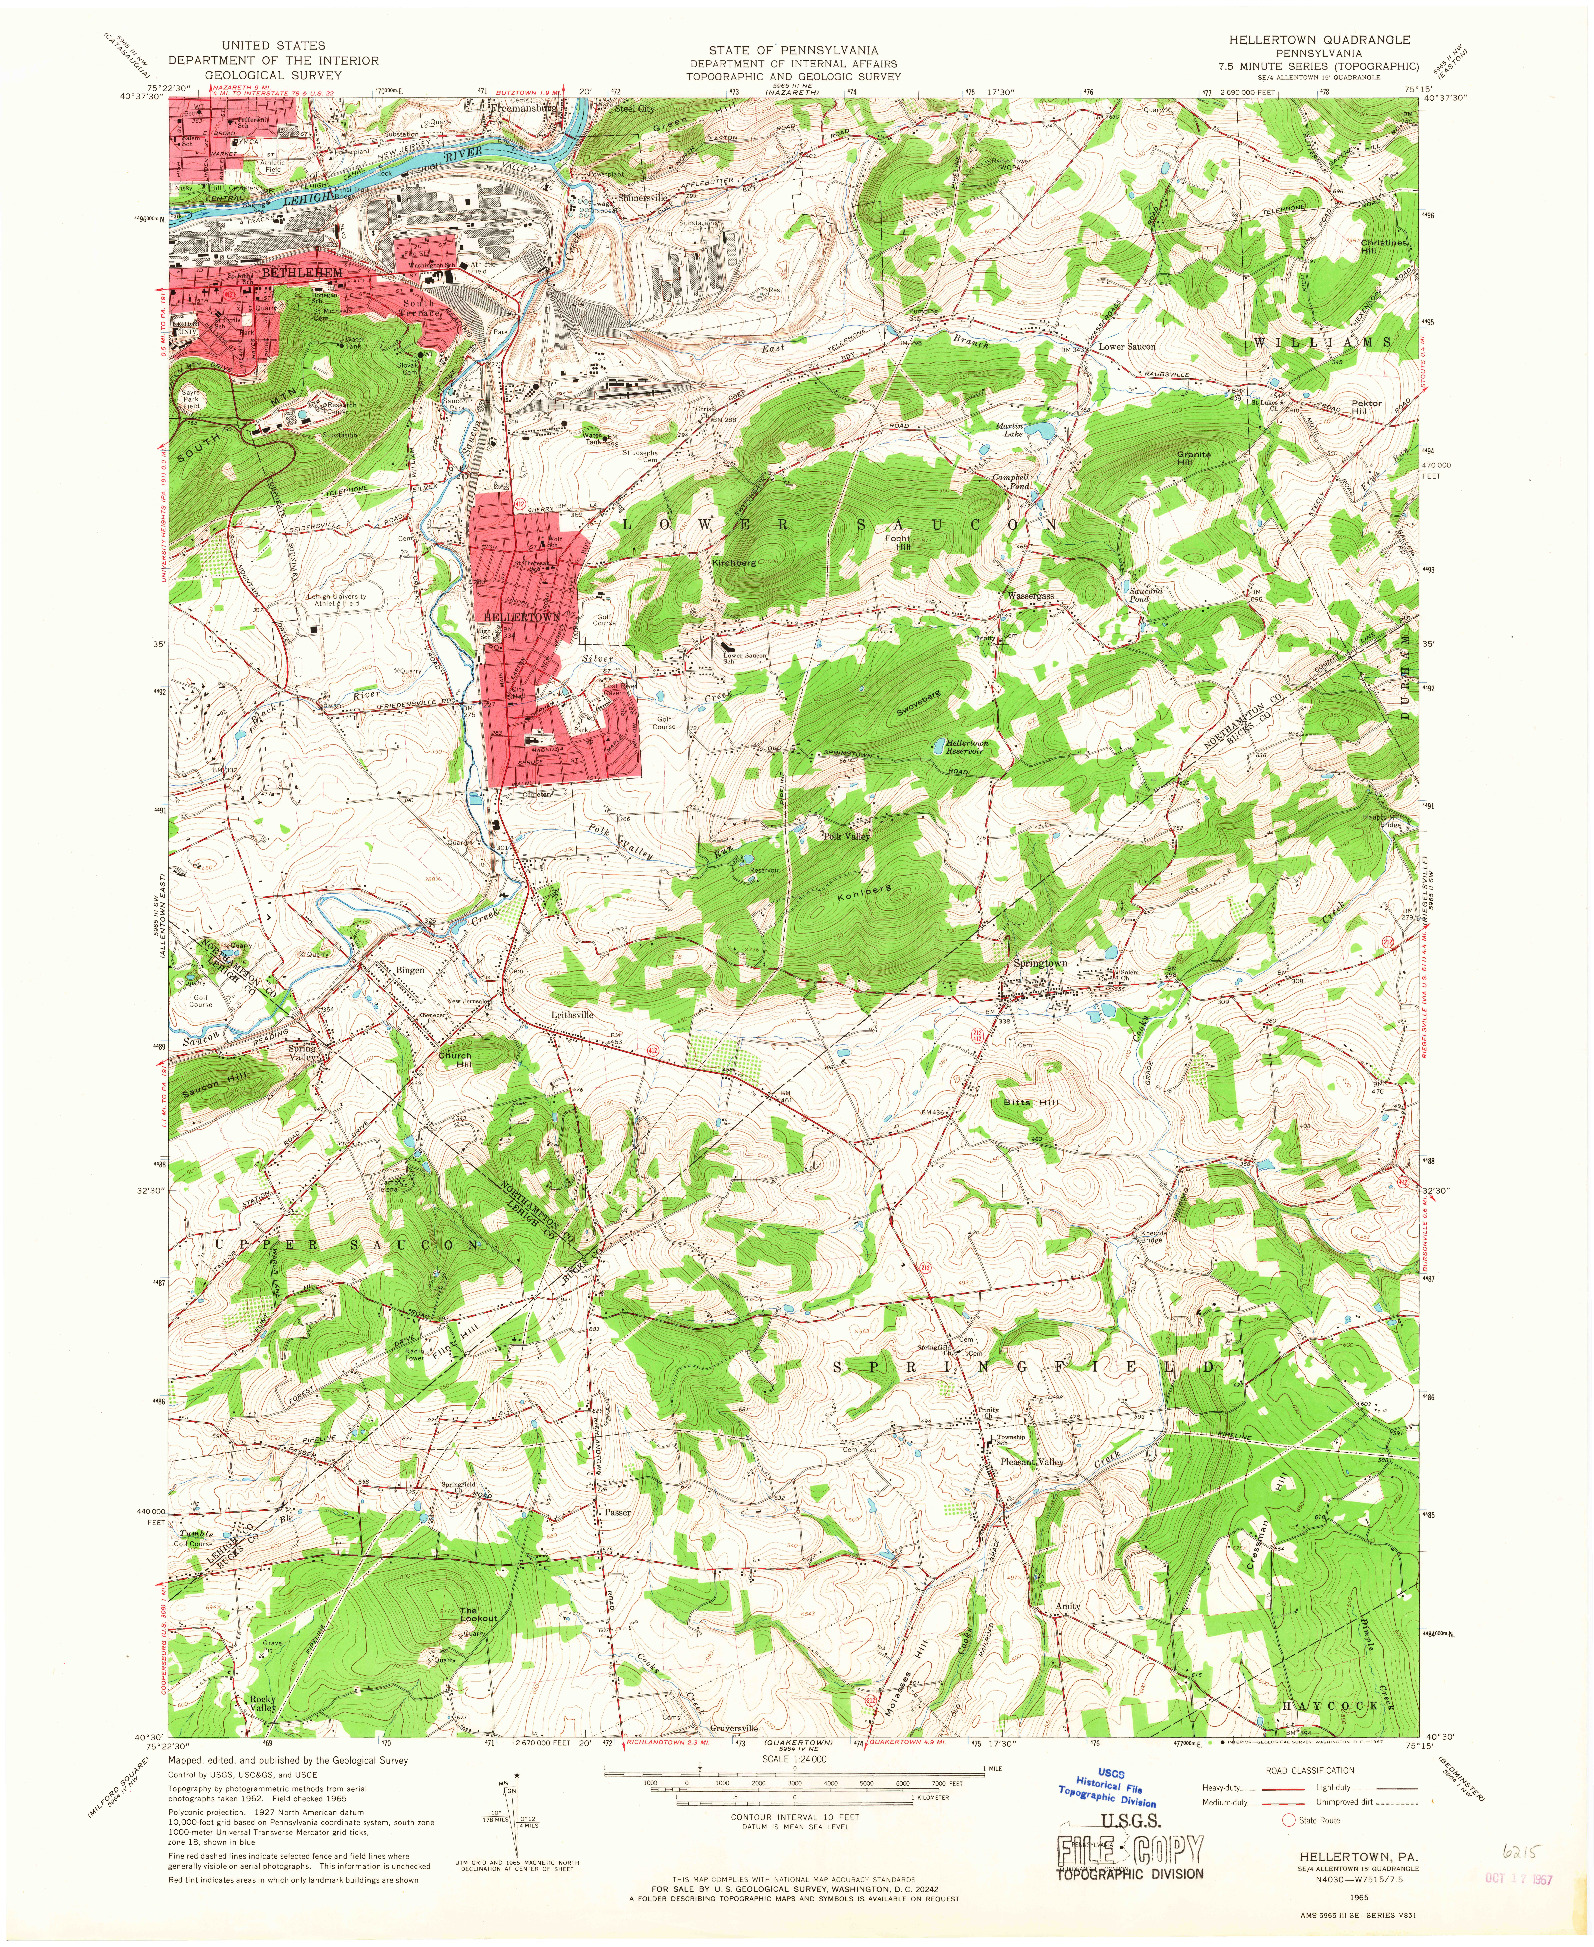 USGS 1:24000-SCALE QUADRANGLE FOR ERTOWN, PA 1965 on interstate 30 map, interstate map of mississippi and alabama, interstate 85 map, lincoln way map, new jersey route 1 map, interstate highway map, interstate 526 map, interstate 75 map, interstate 70 map, interstate 27 map, us highway 78 map, interstate 80 map, interstate 25 map, interstate 10 map, interstate 422 map, interstate 26 map, interstate 44 map, interstate 74 map,